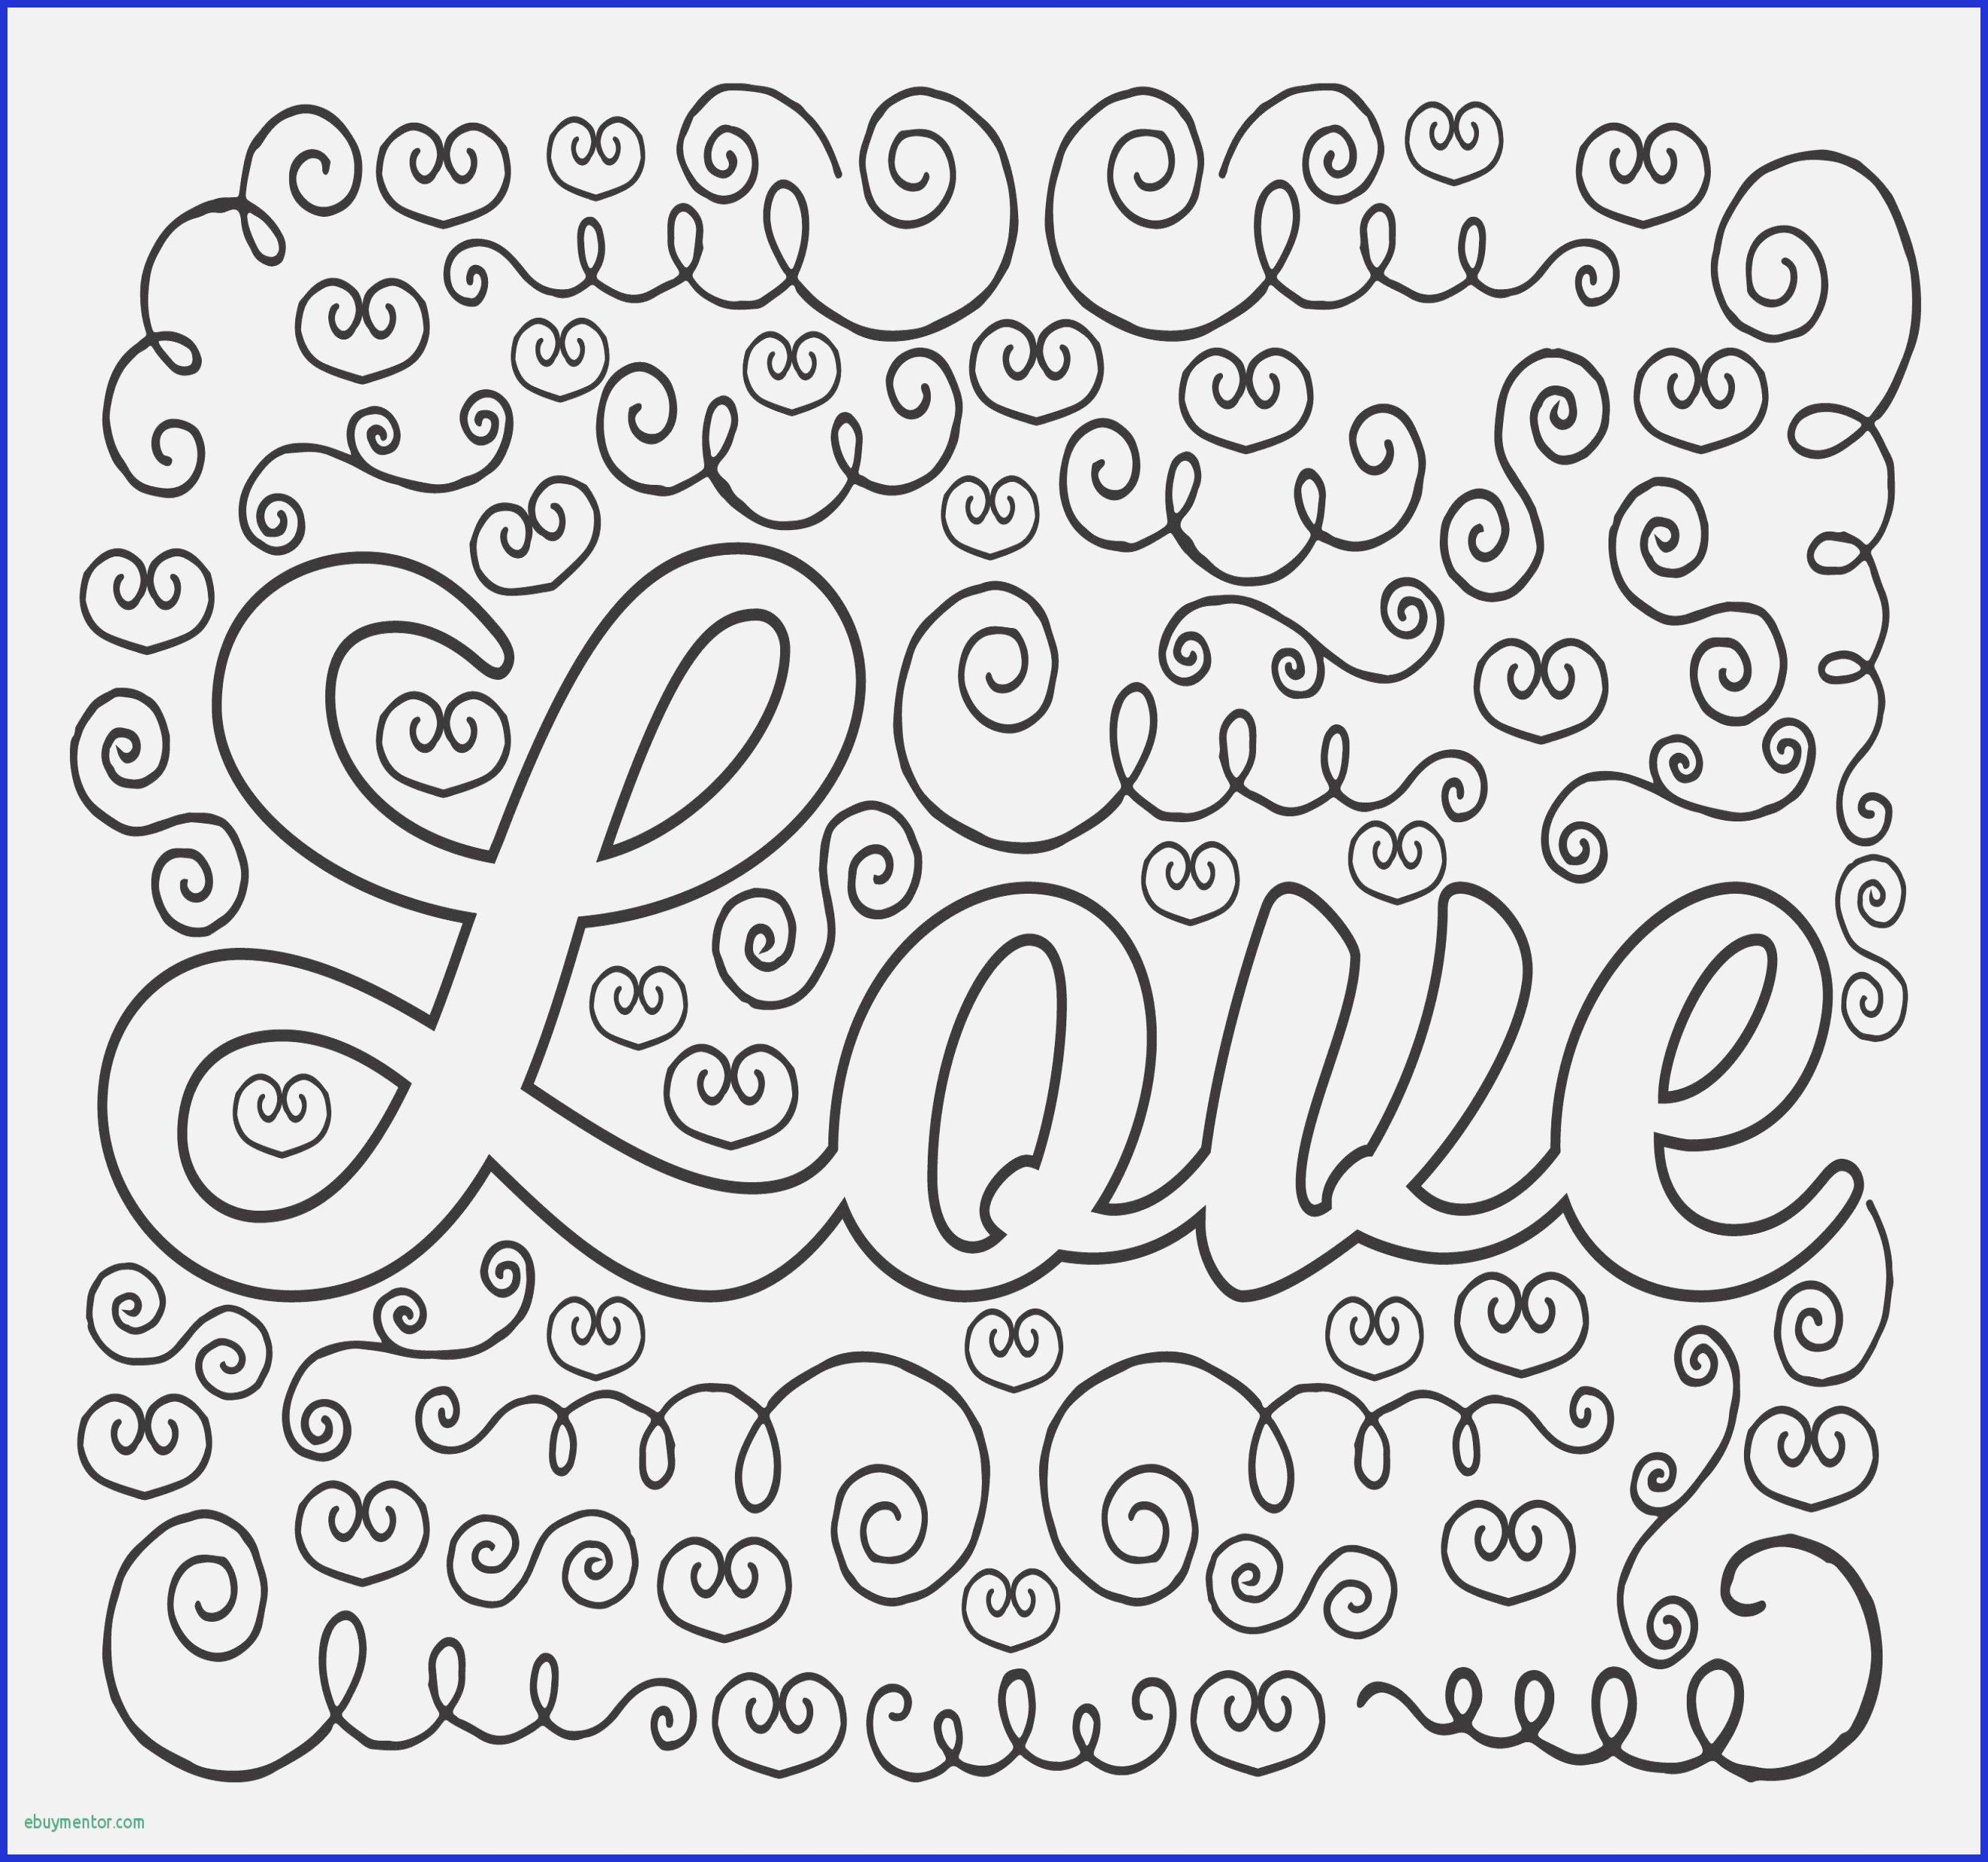 21 Creative Photo Of Merry Christmas Coloring Pages Entitlementtrap Com Quote Coloring Pages Online Coloring Pages Inspirational Quotes Coloring